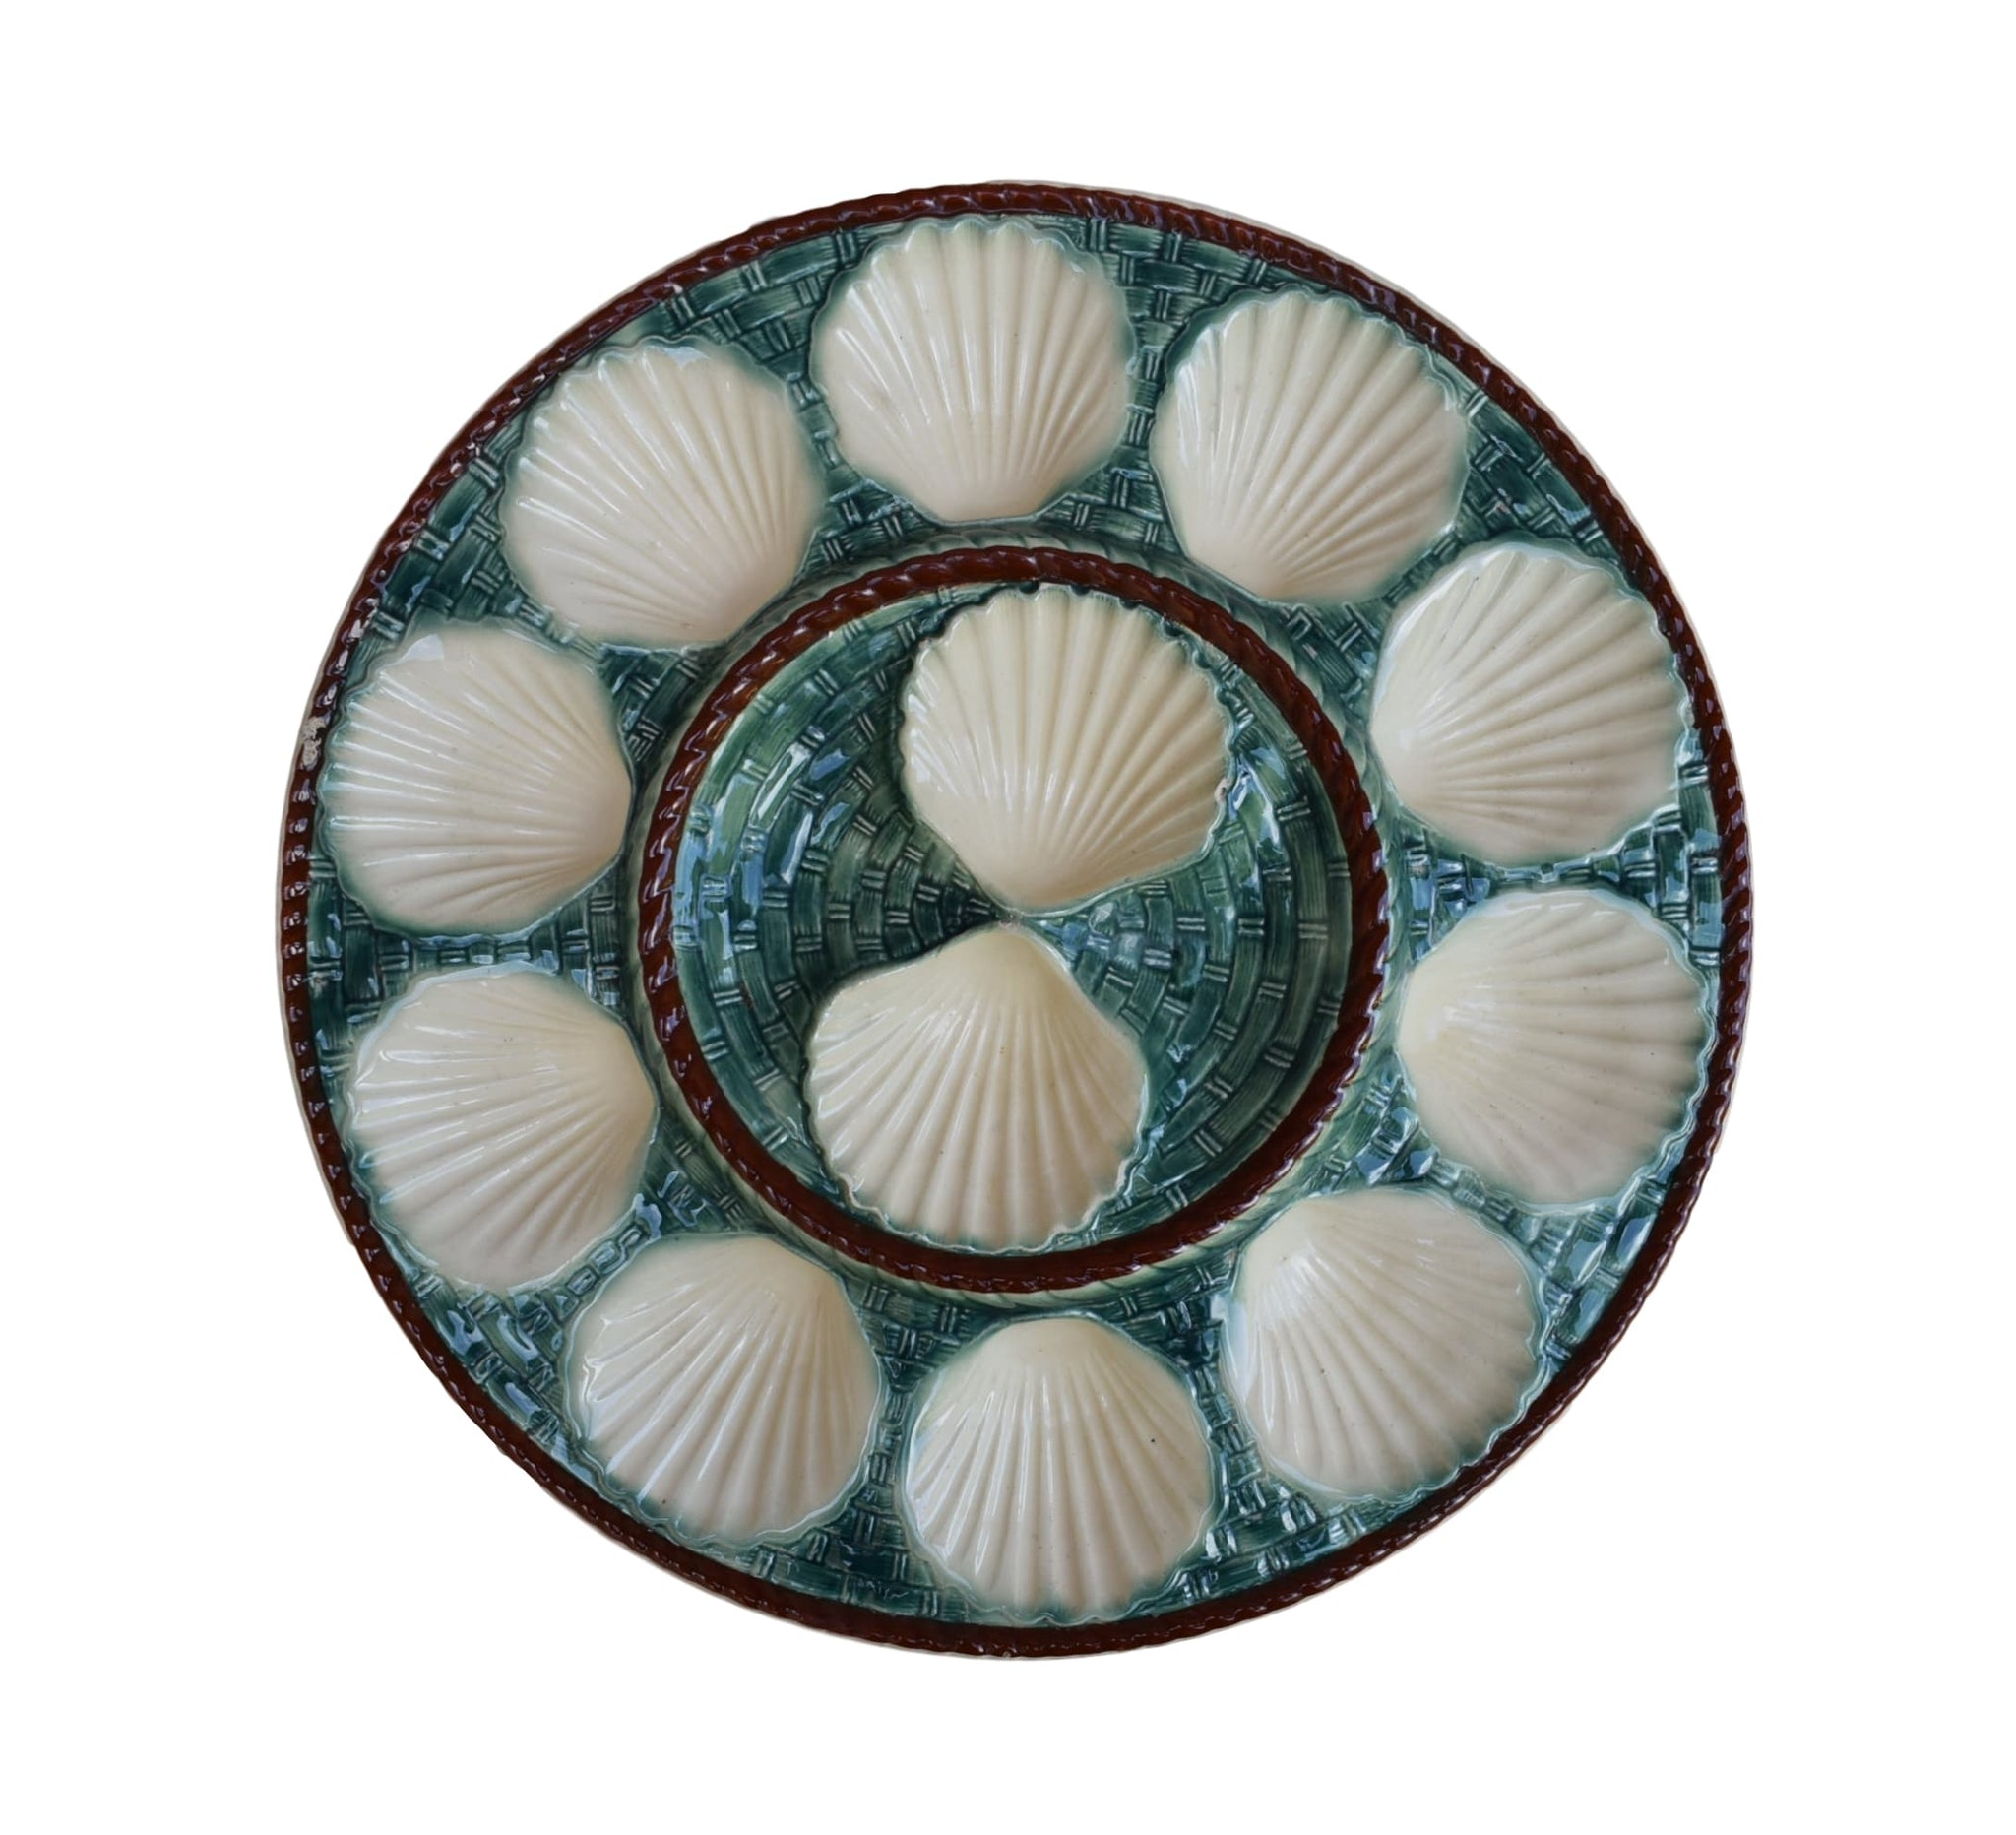 French Antique Majolica Scalloped Oyster Platter by Longchamp - French Green & Brown Scallop Shell Jacques Plate - Seafood